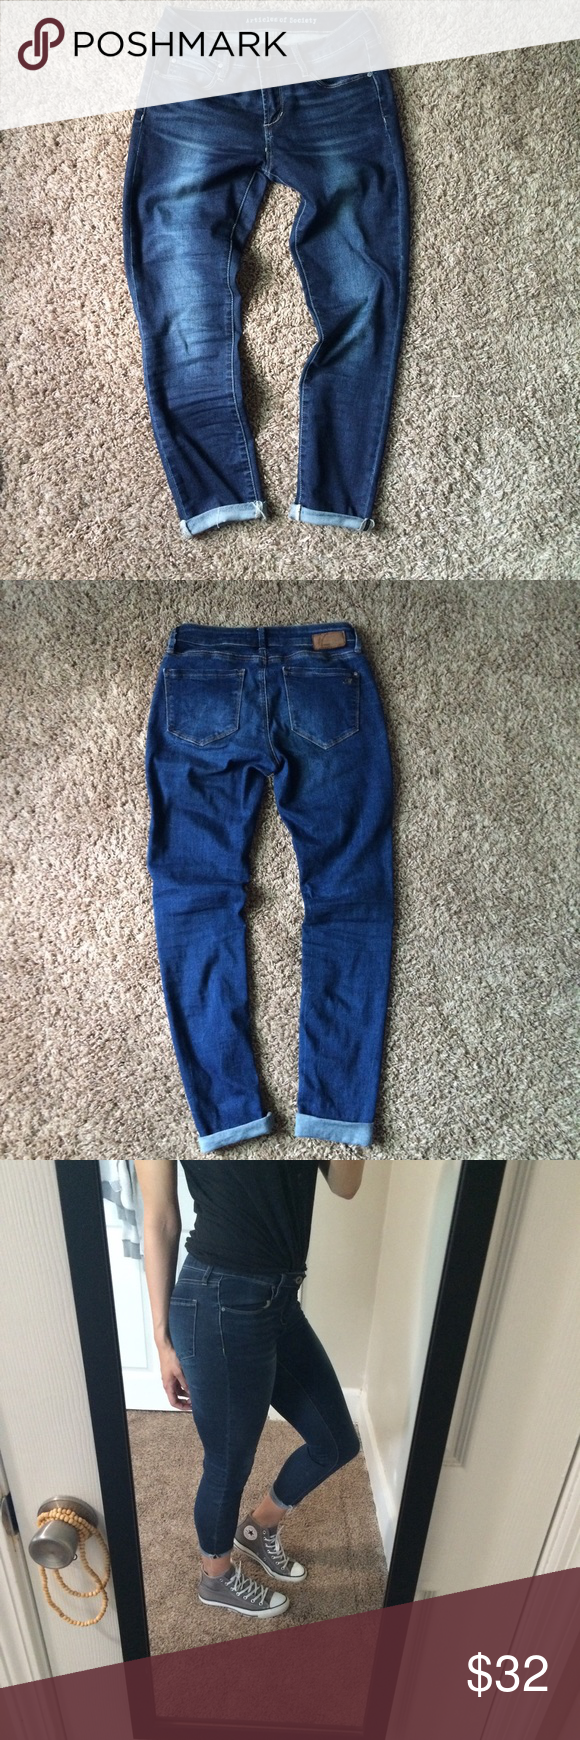 50++ Articles of society jeans ideas ideas